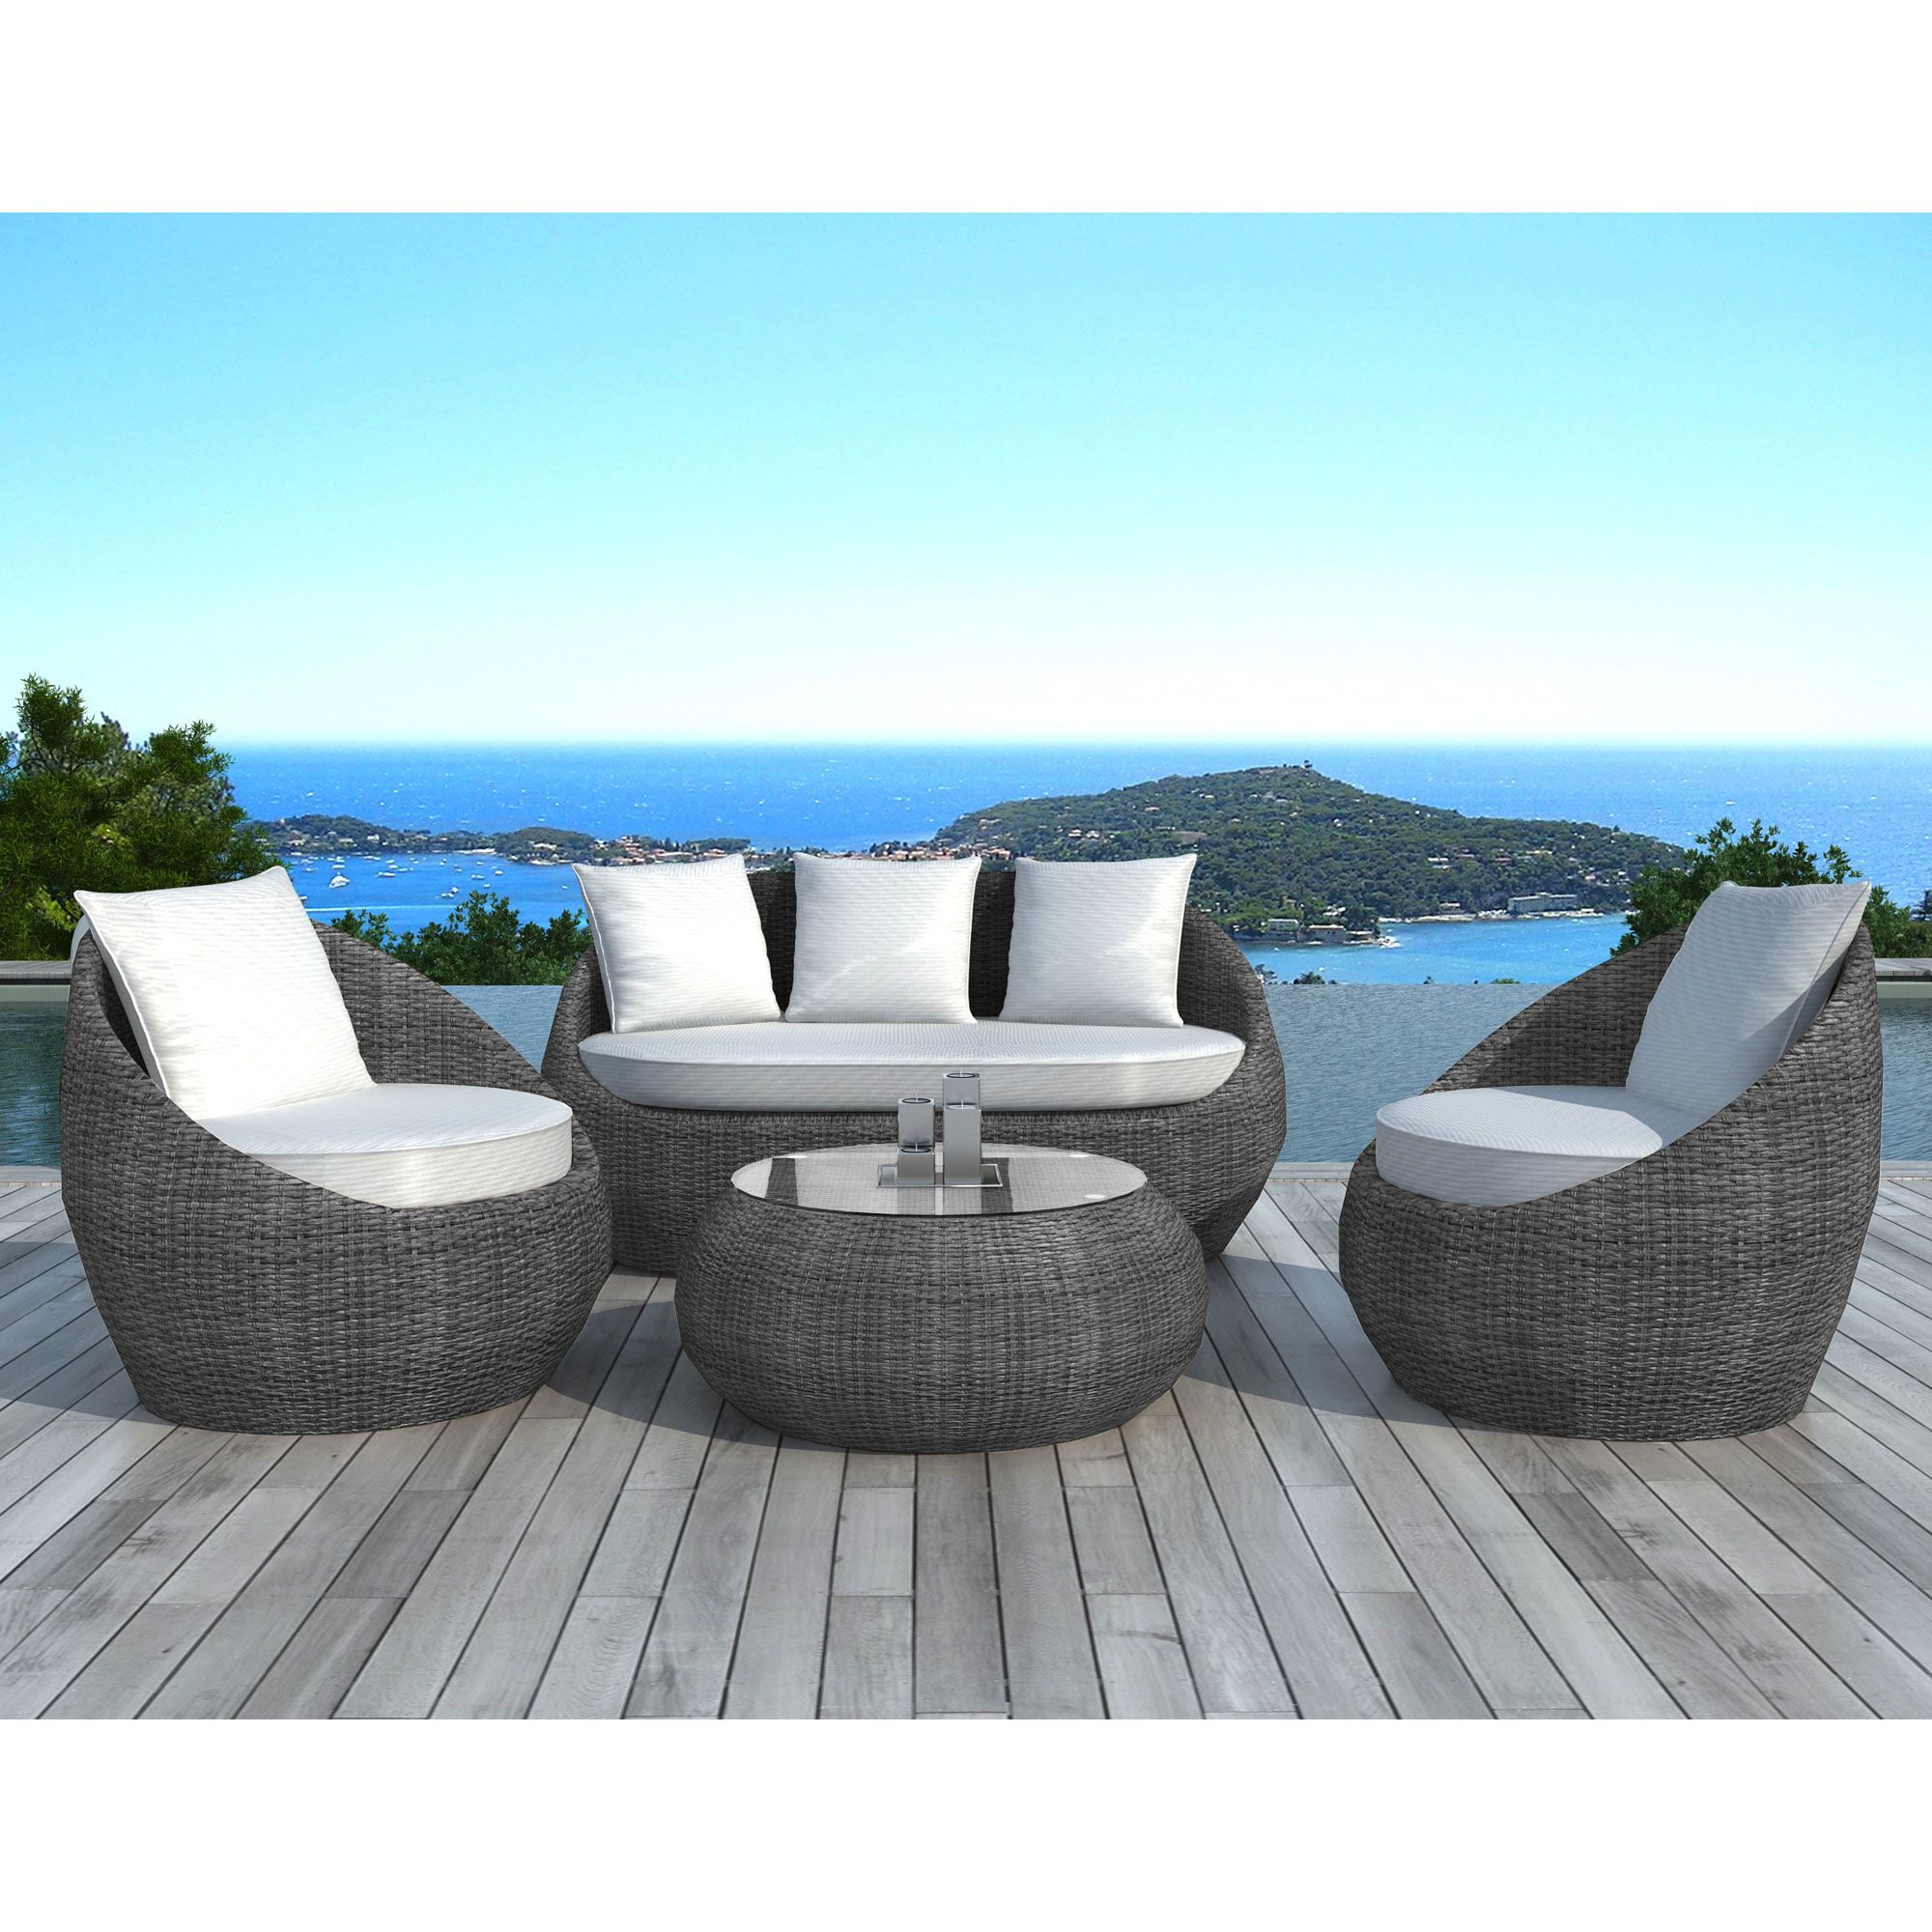 Salon de jardin en r sine tress e 5 places - Table basse resine tressee ...